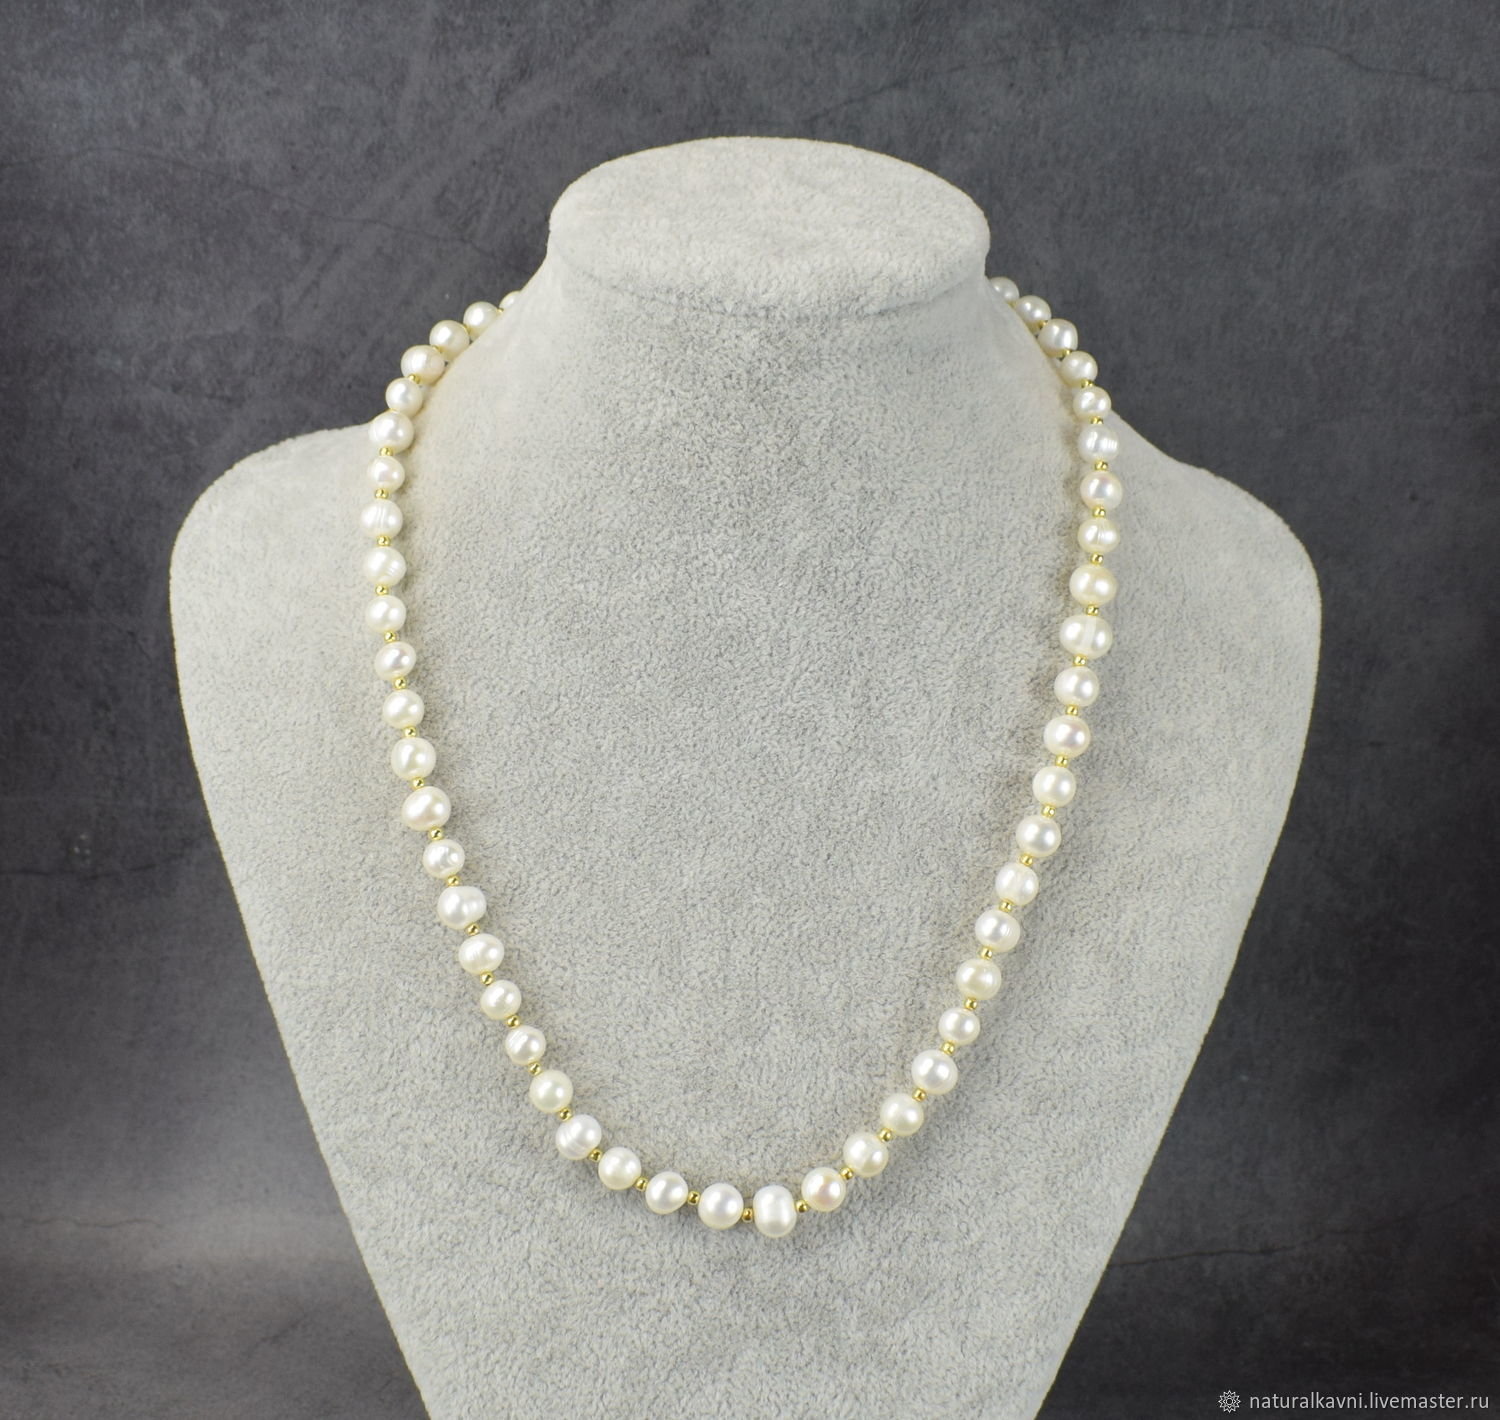 Natural river pearl beads with gold fittings, Beads2, Moscow,  Фото №1